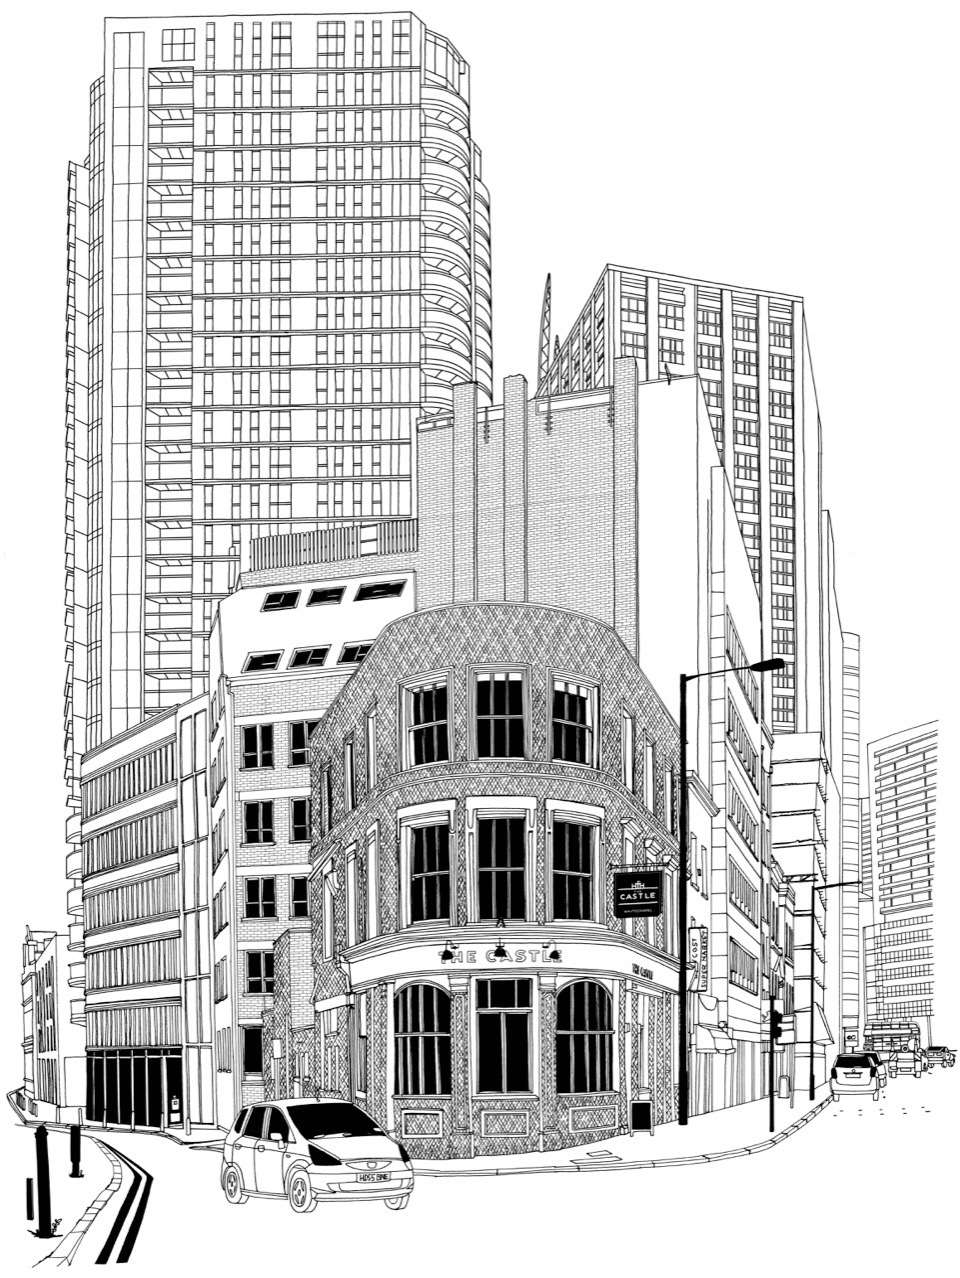 Jitesh Patel, Fine line pen illustration of a city scape in black and white with detailed architecture elements